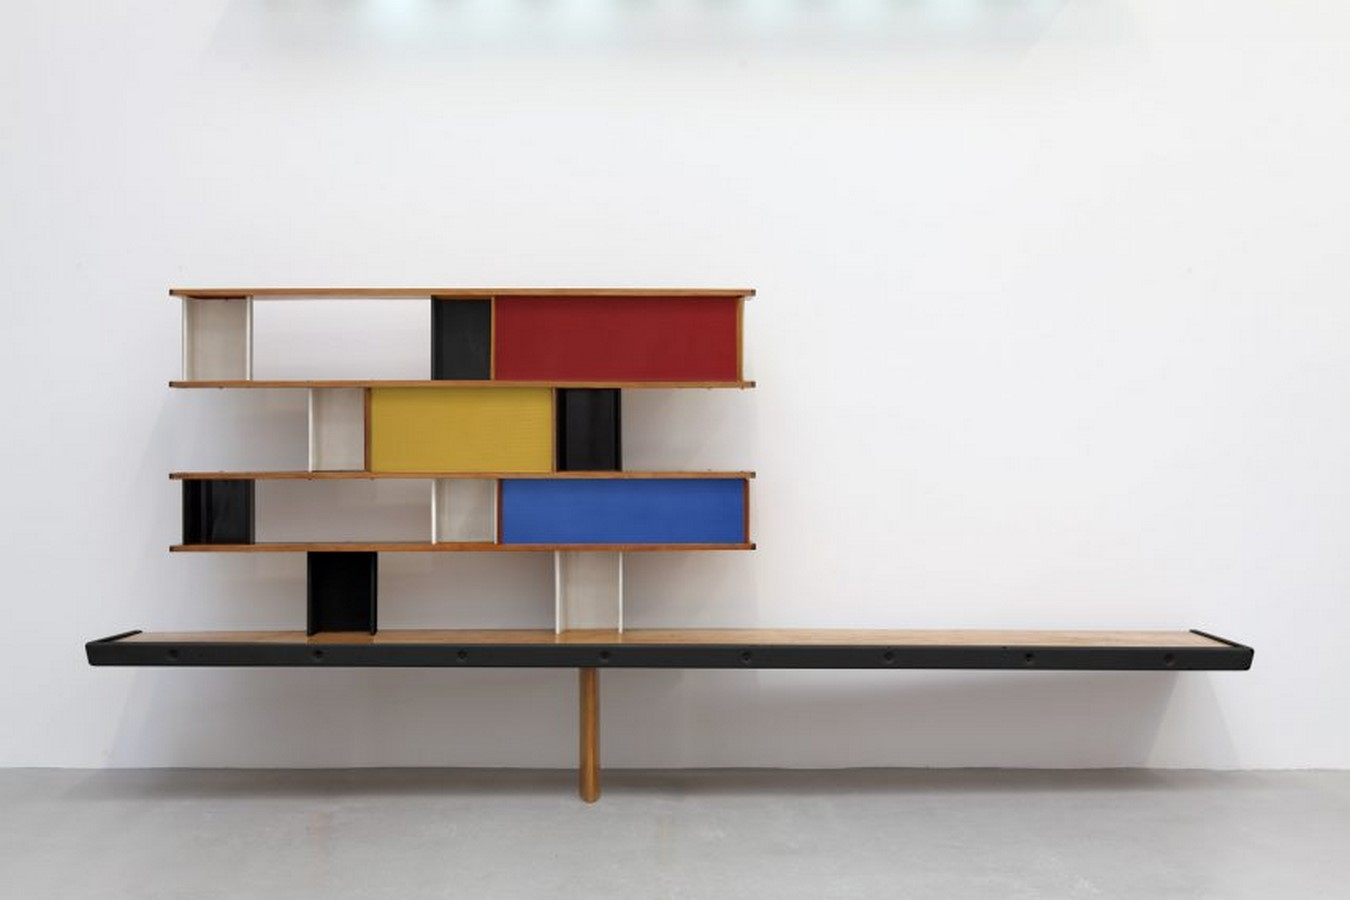 10 things you did not know about Charlotte Perriand sheet20